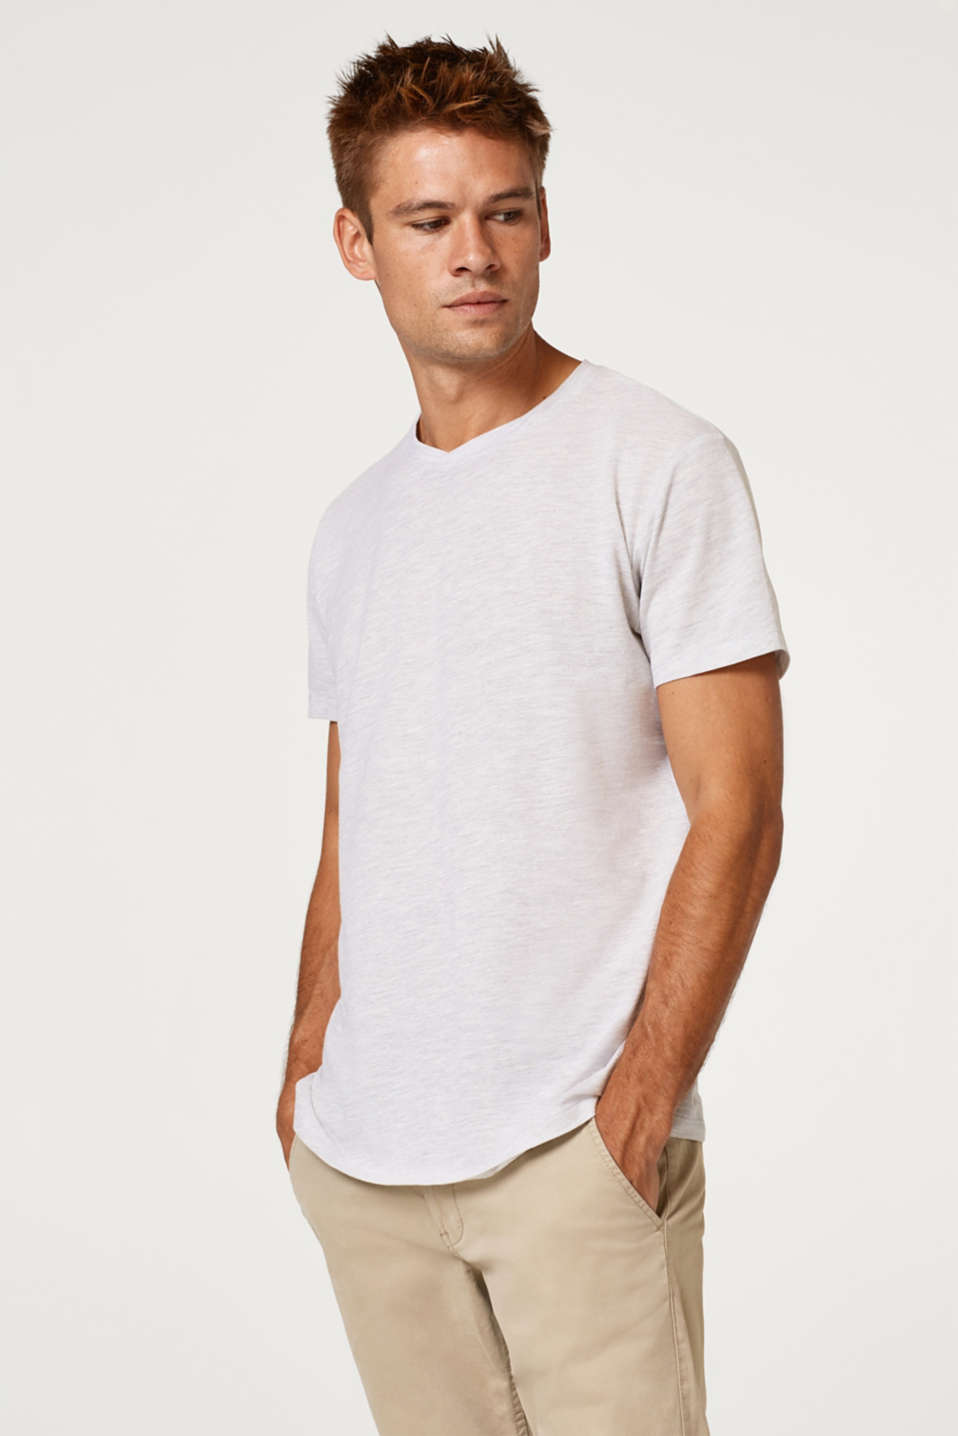 edc - Piqué T-shirt in blended cotton